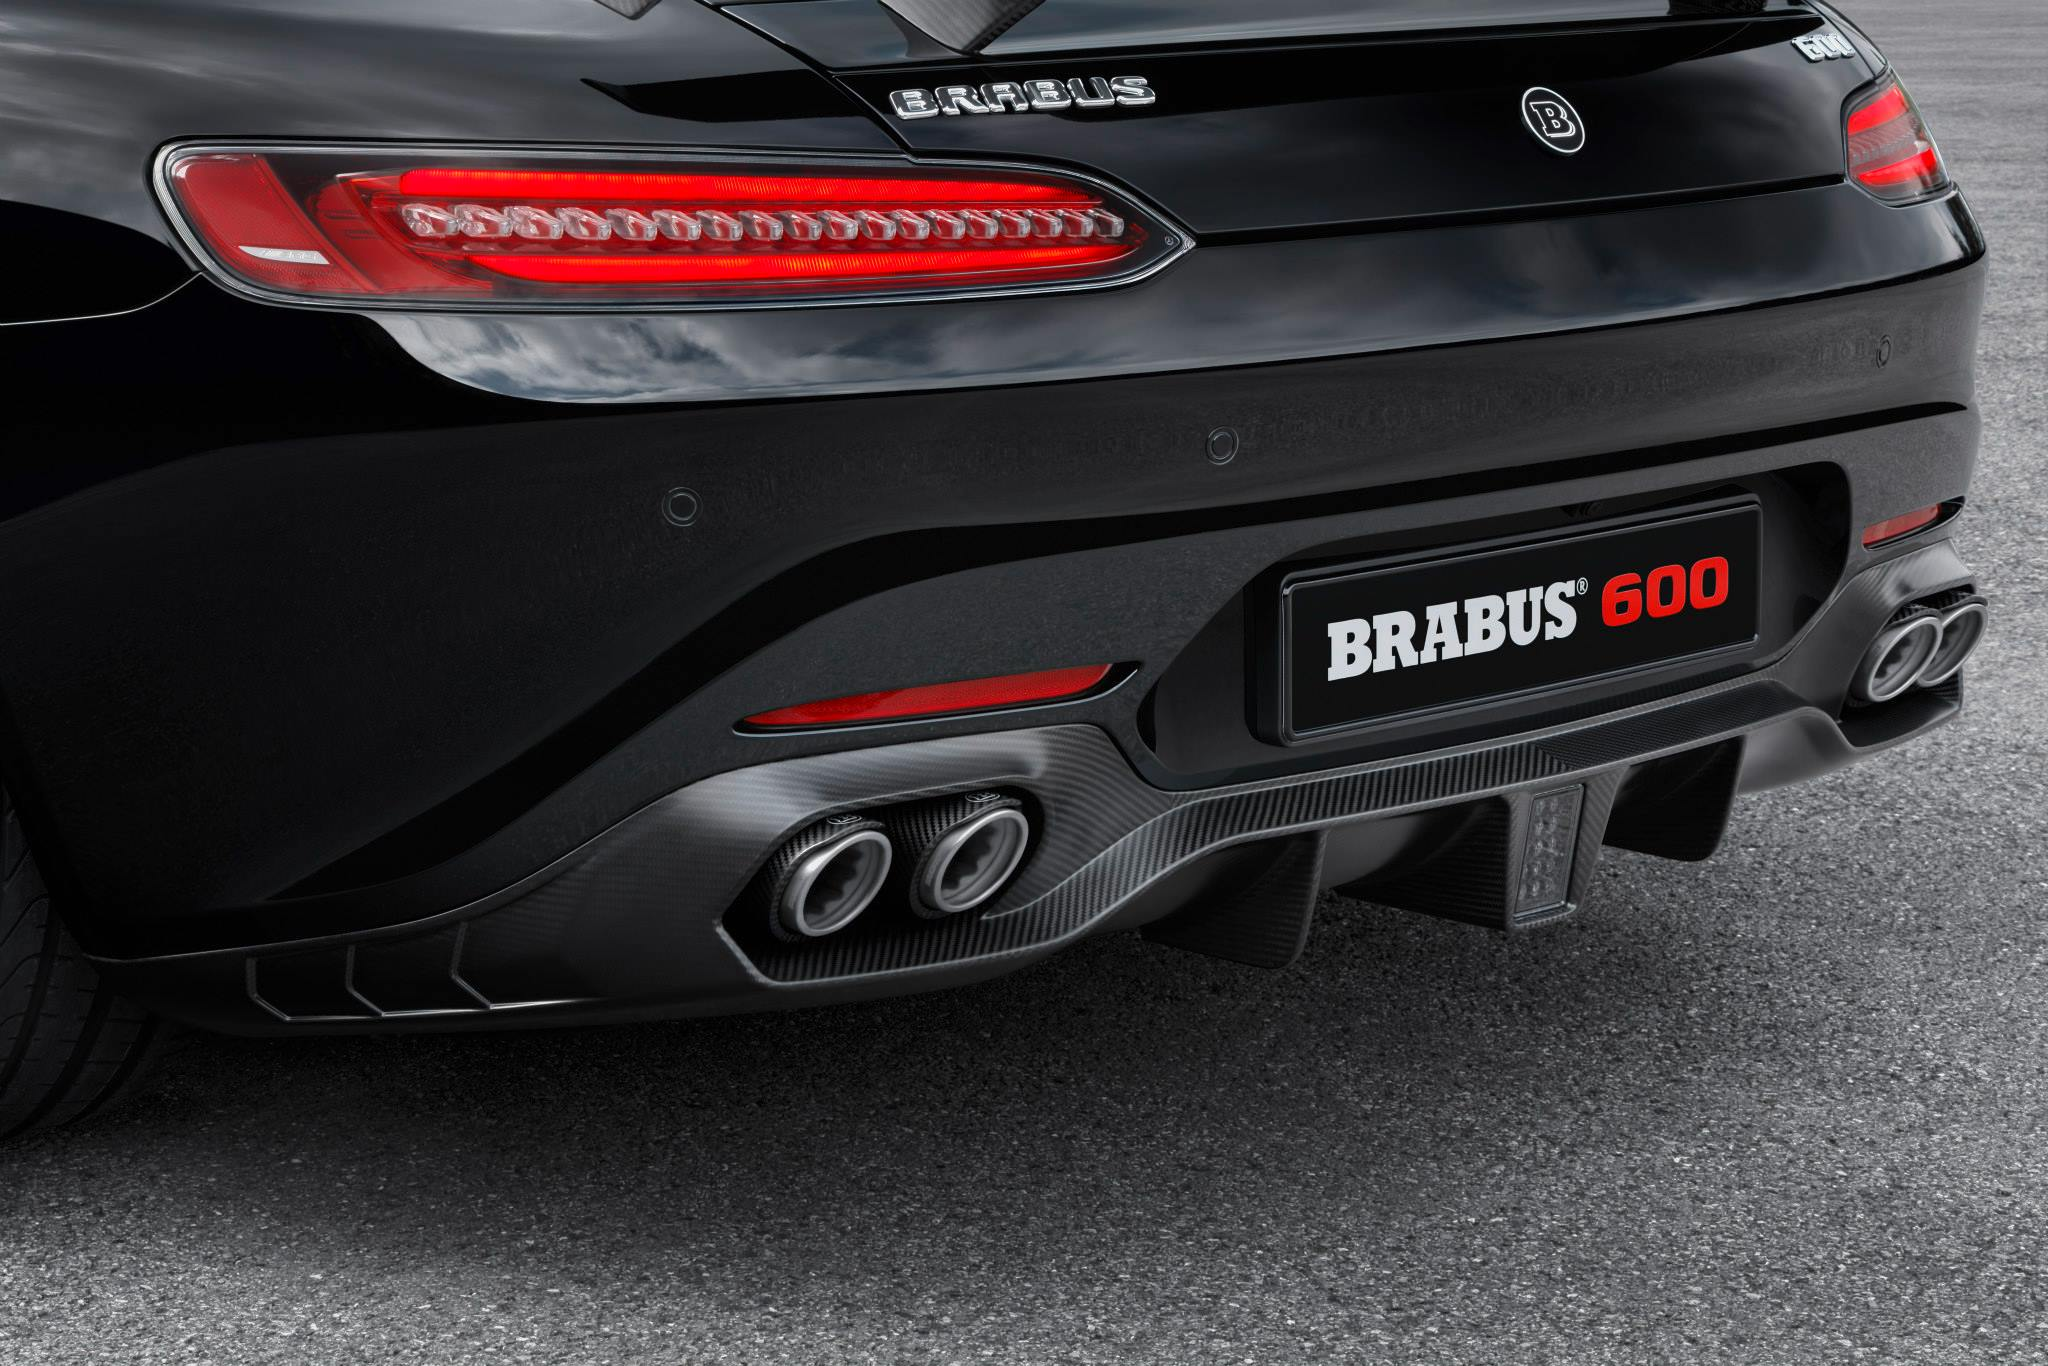 Brabus Reveals Tuned Mercedes AMG GT S With 600 HP Ahead